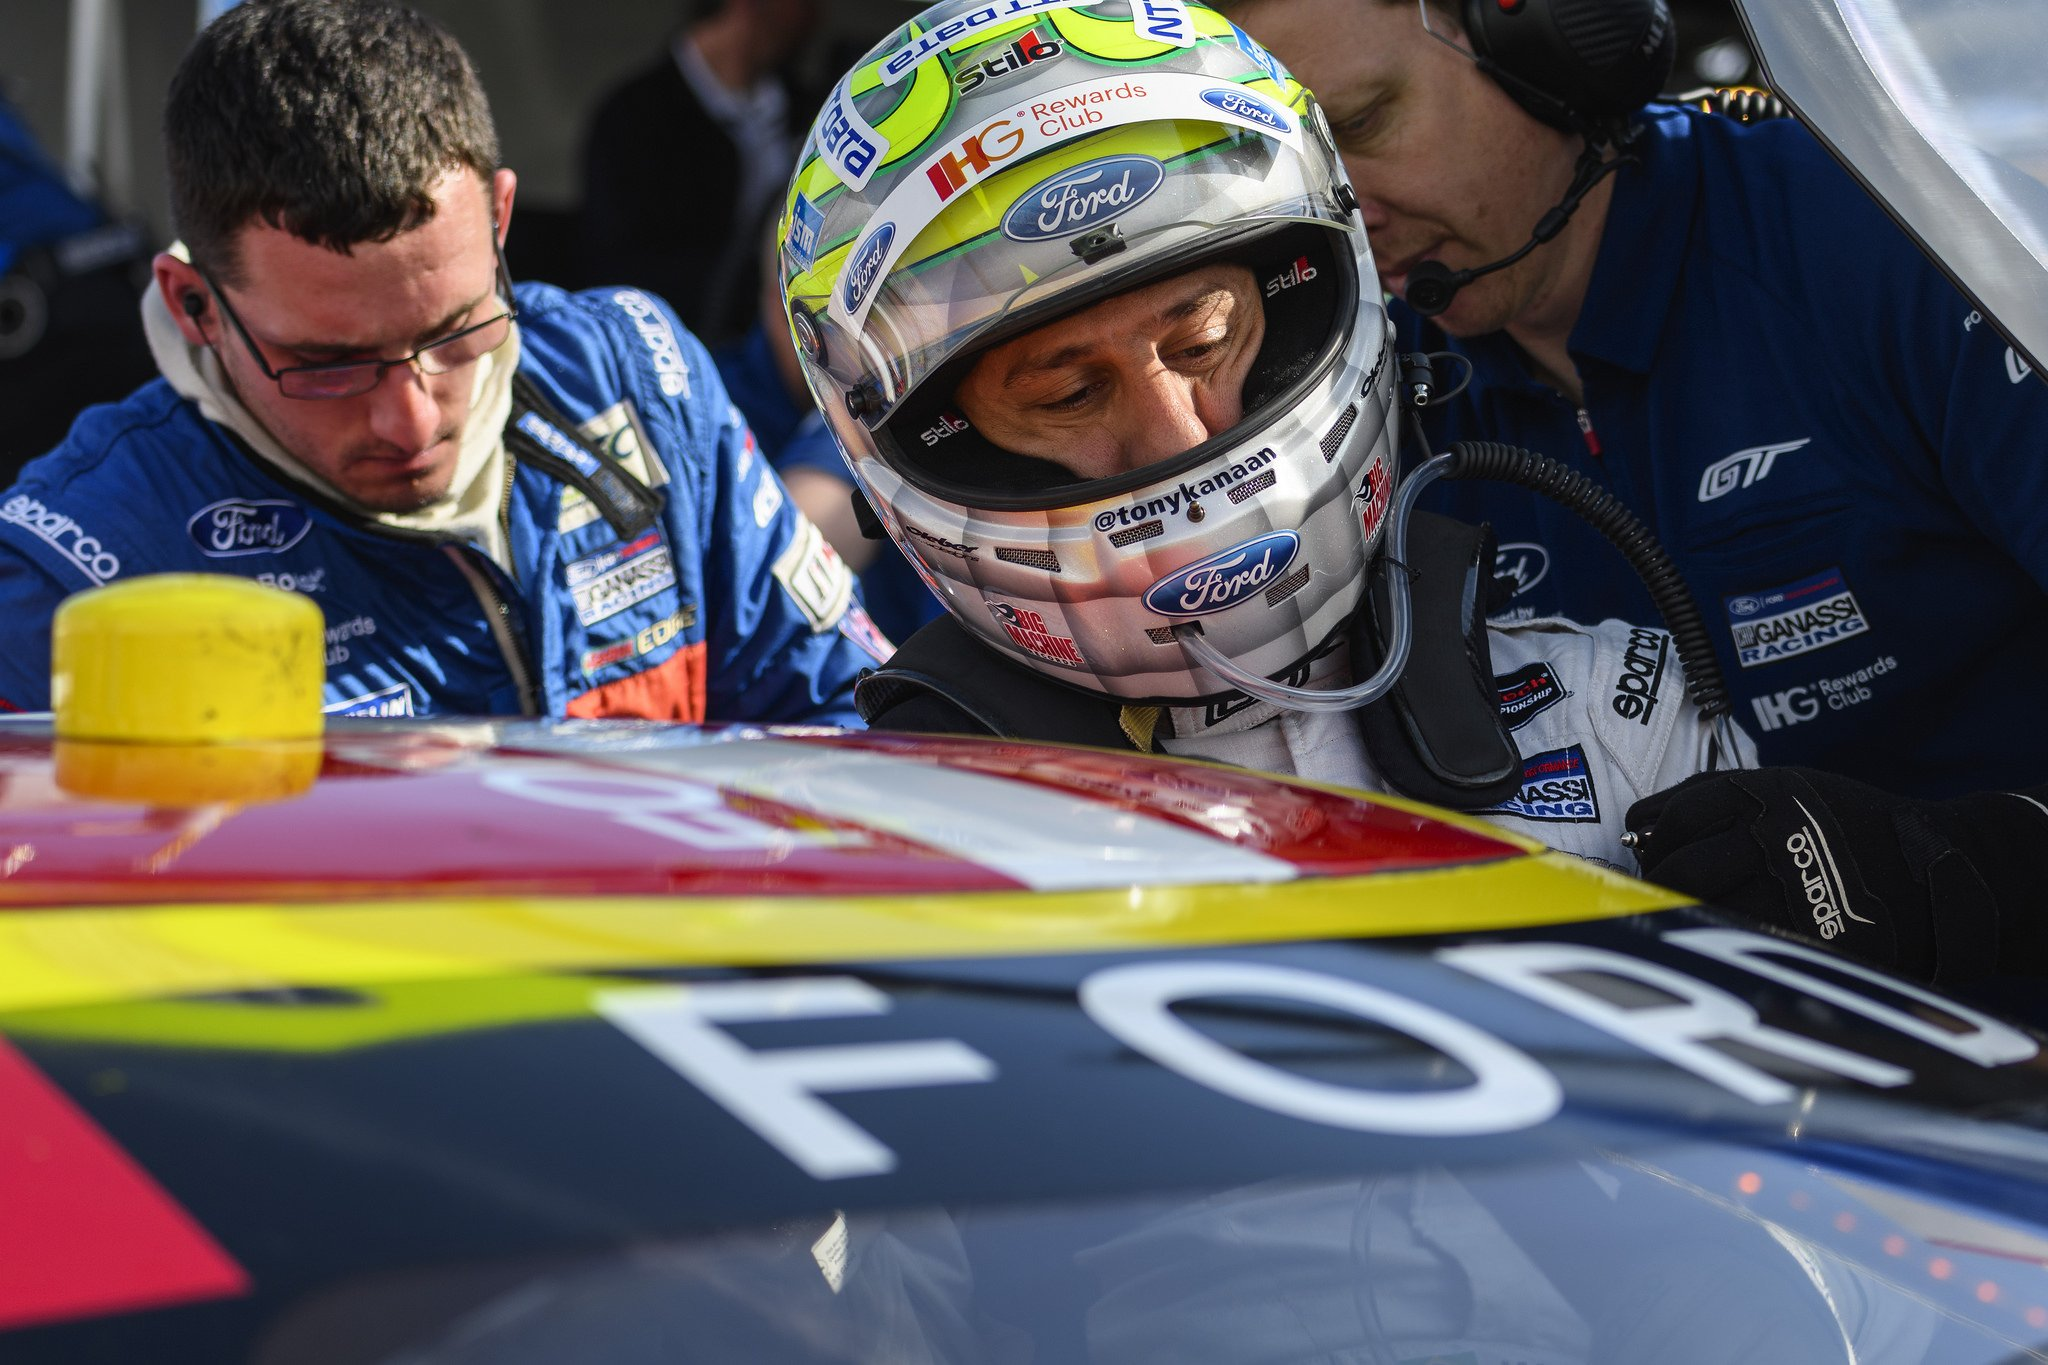 Tony Kanaan Gets His Chance at Le Mans in the No 68 Ford GT